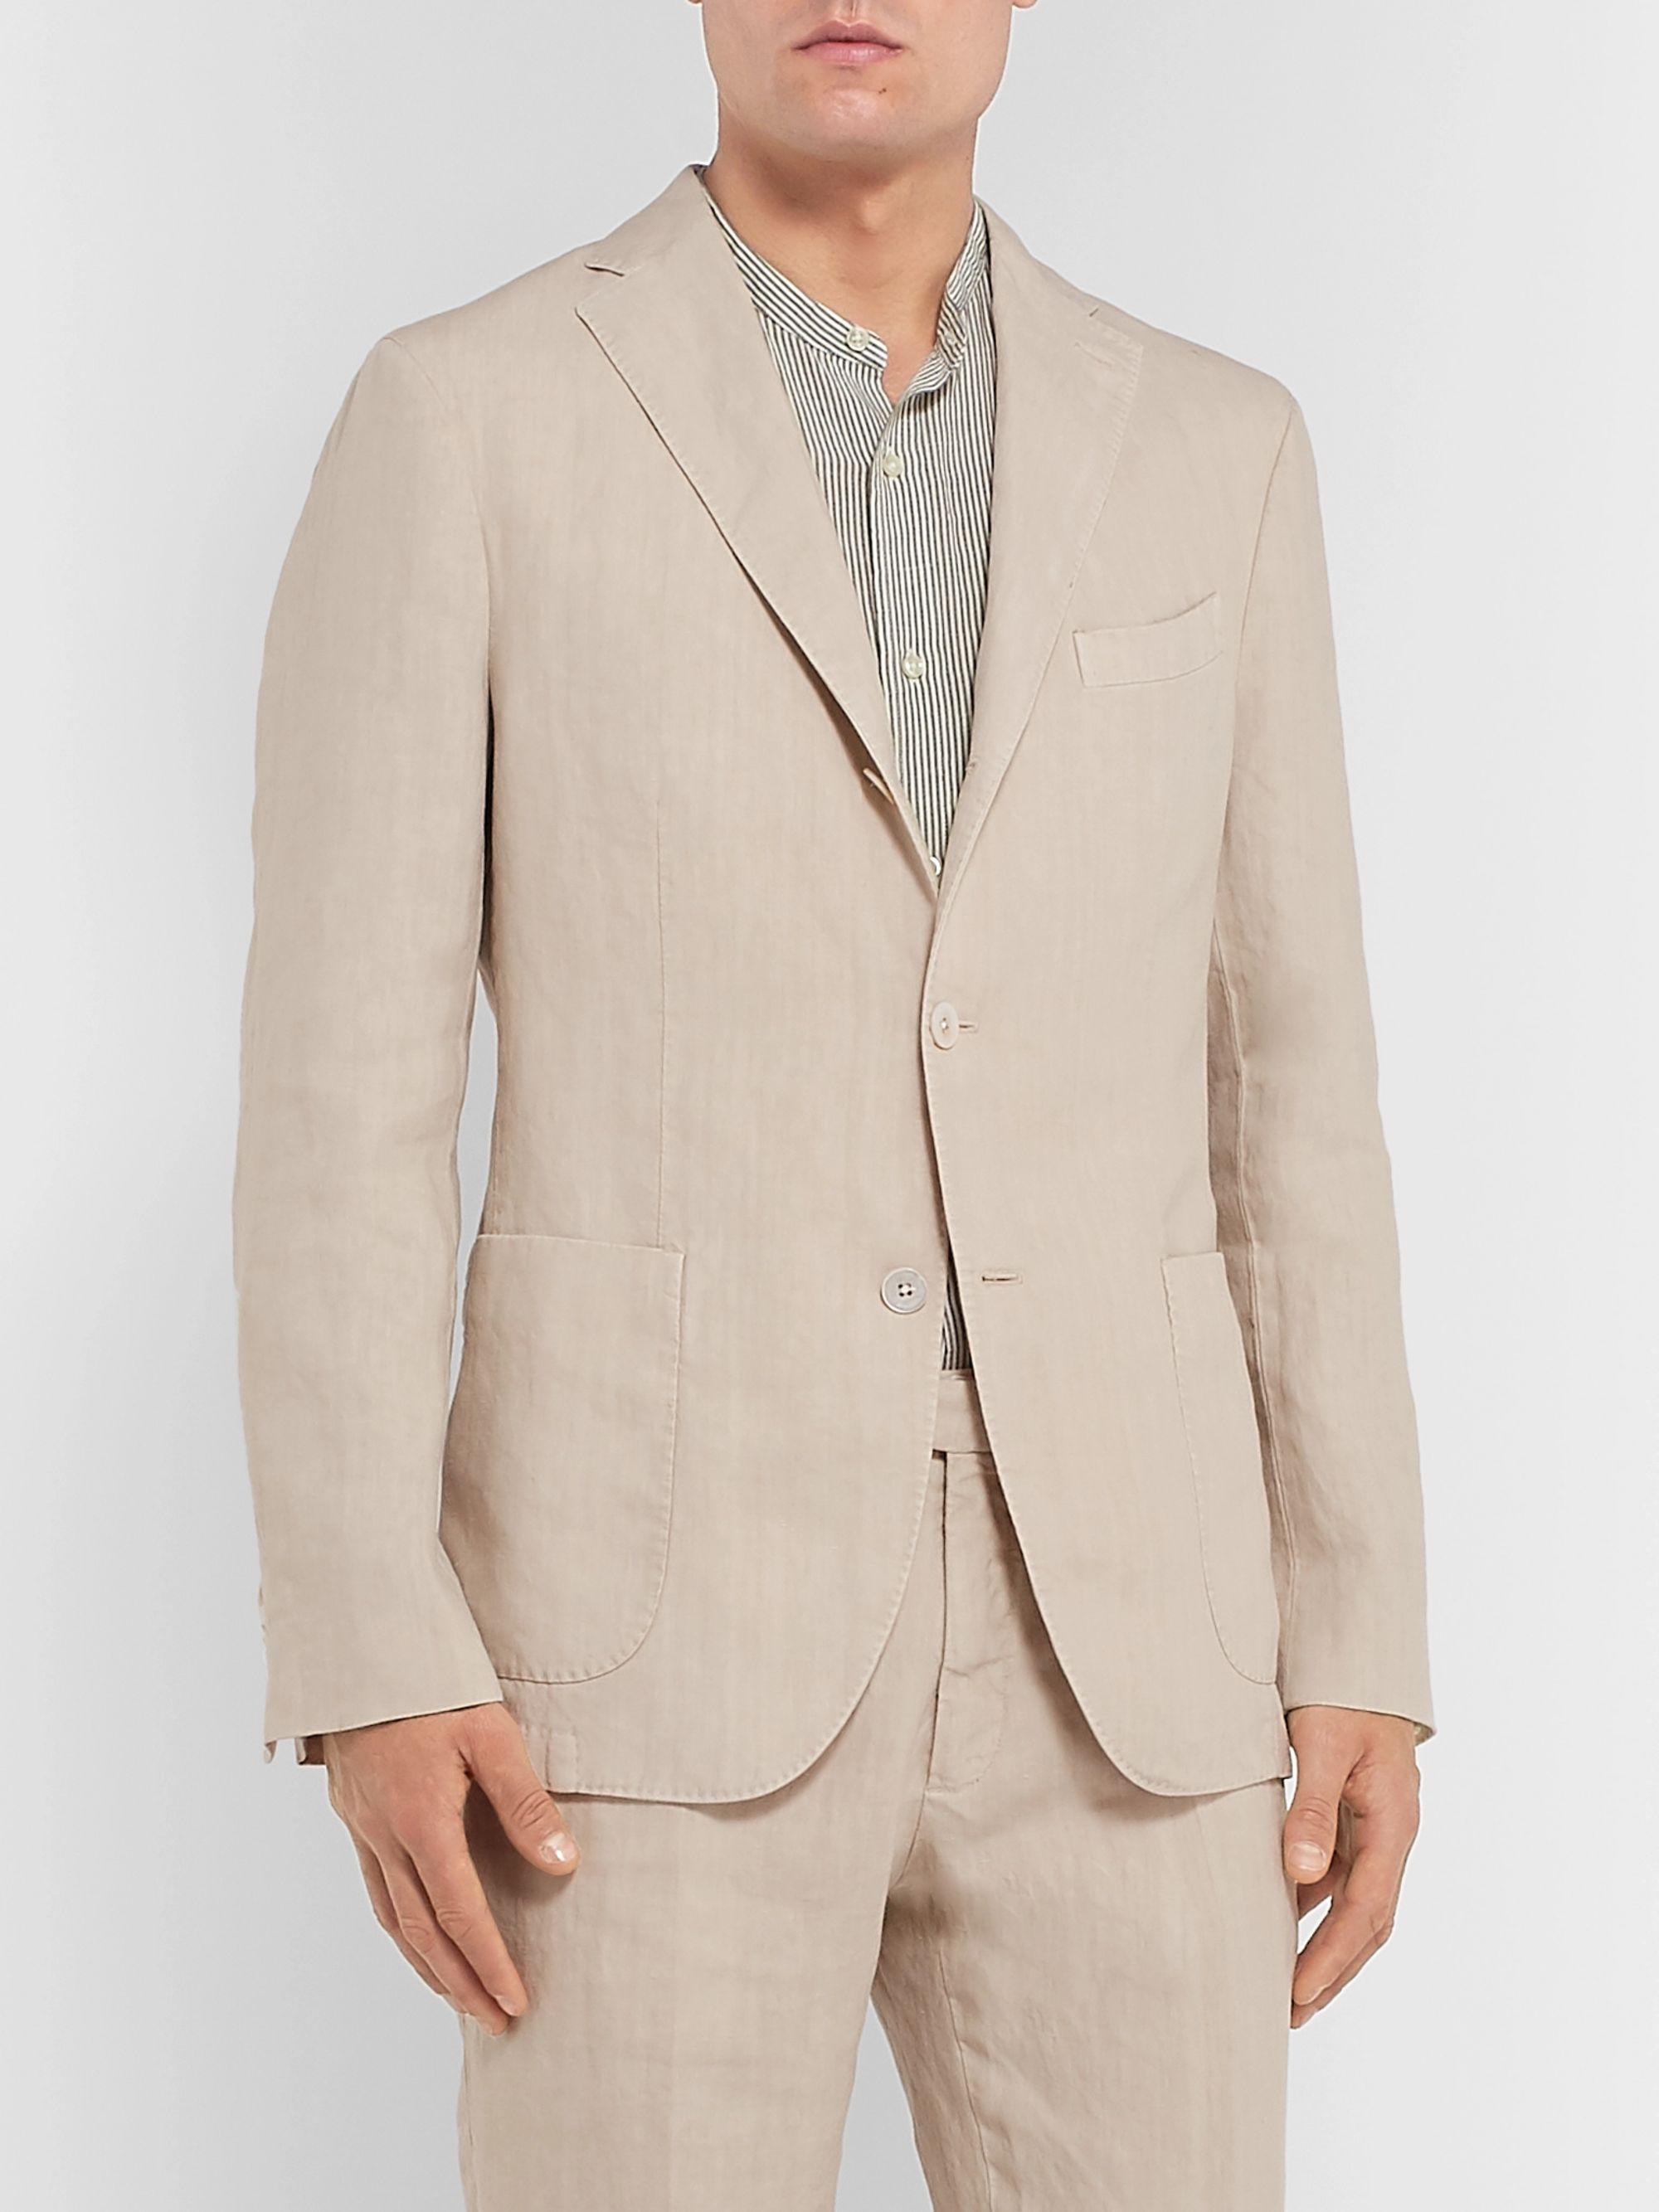 Boglioli Navy K-Jacket Slim-Fit Unstructured Linen Suit Jacket